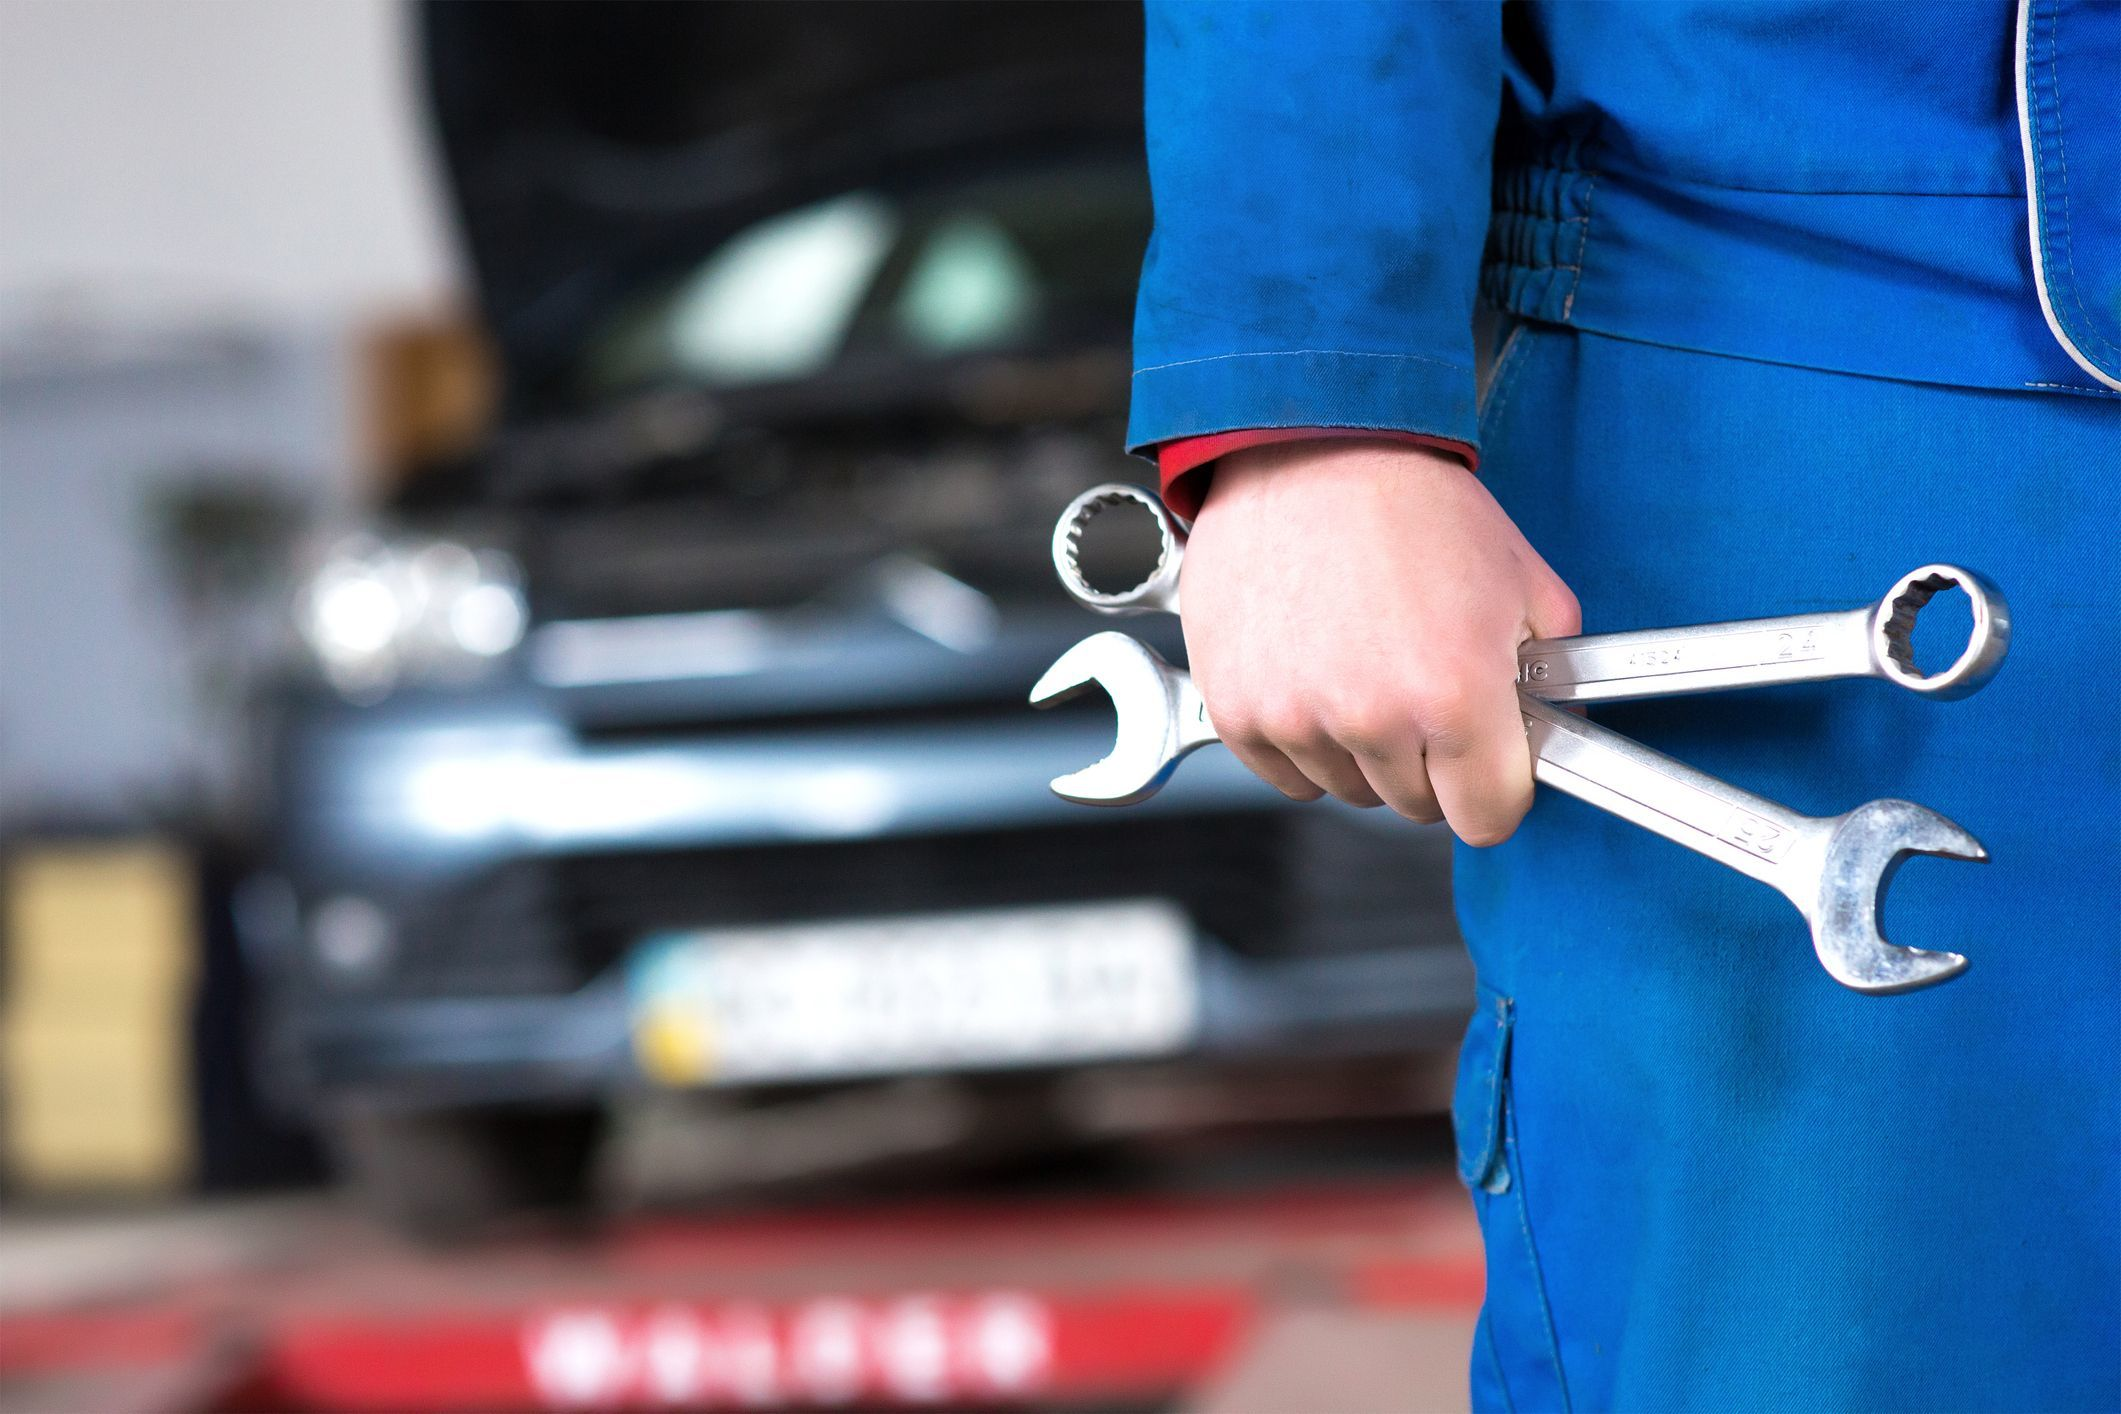 J.D. Power 2019 Customer Service Index study found completing repairs right the first time is done 94 percent of the time on average, but washing the customer's car is only done 45 percent of the time.